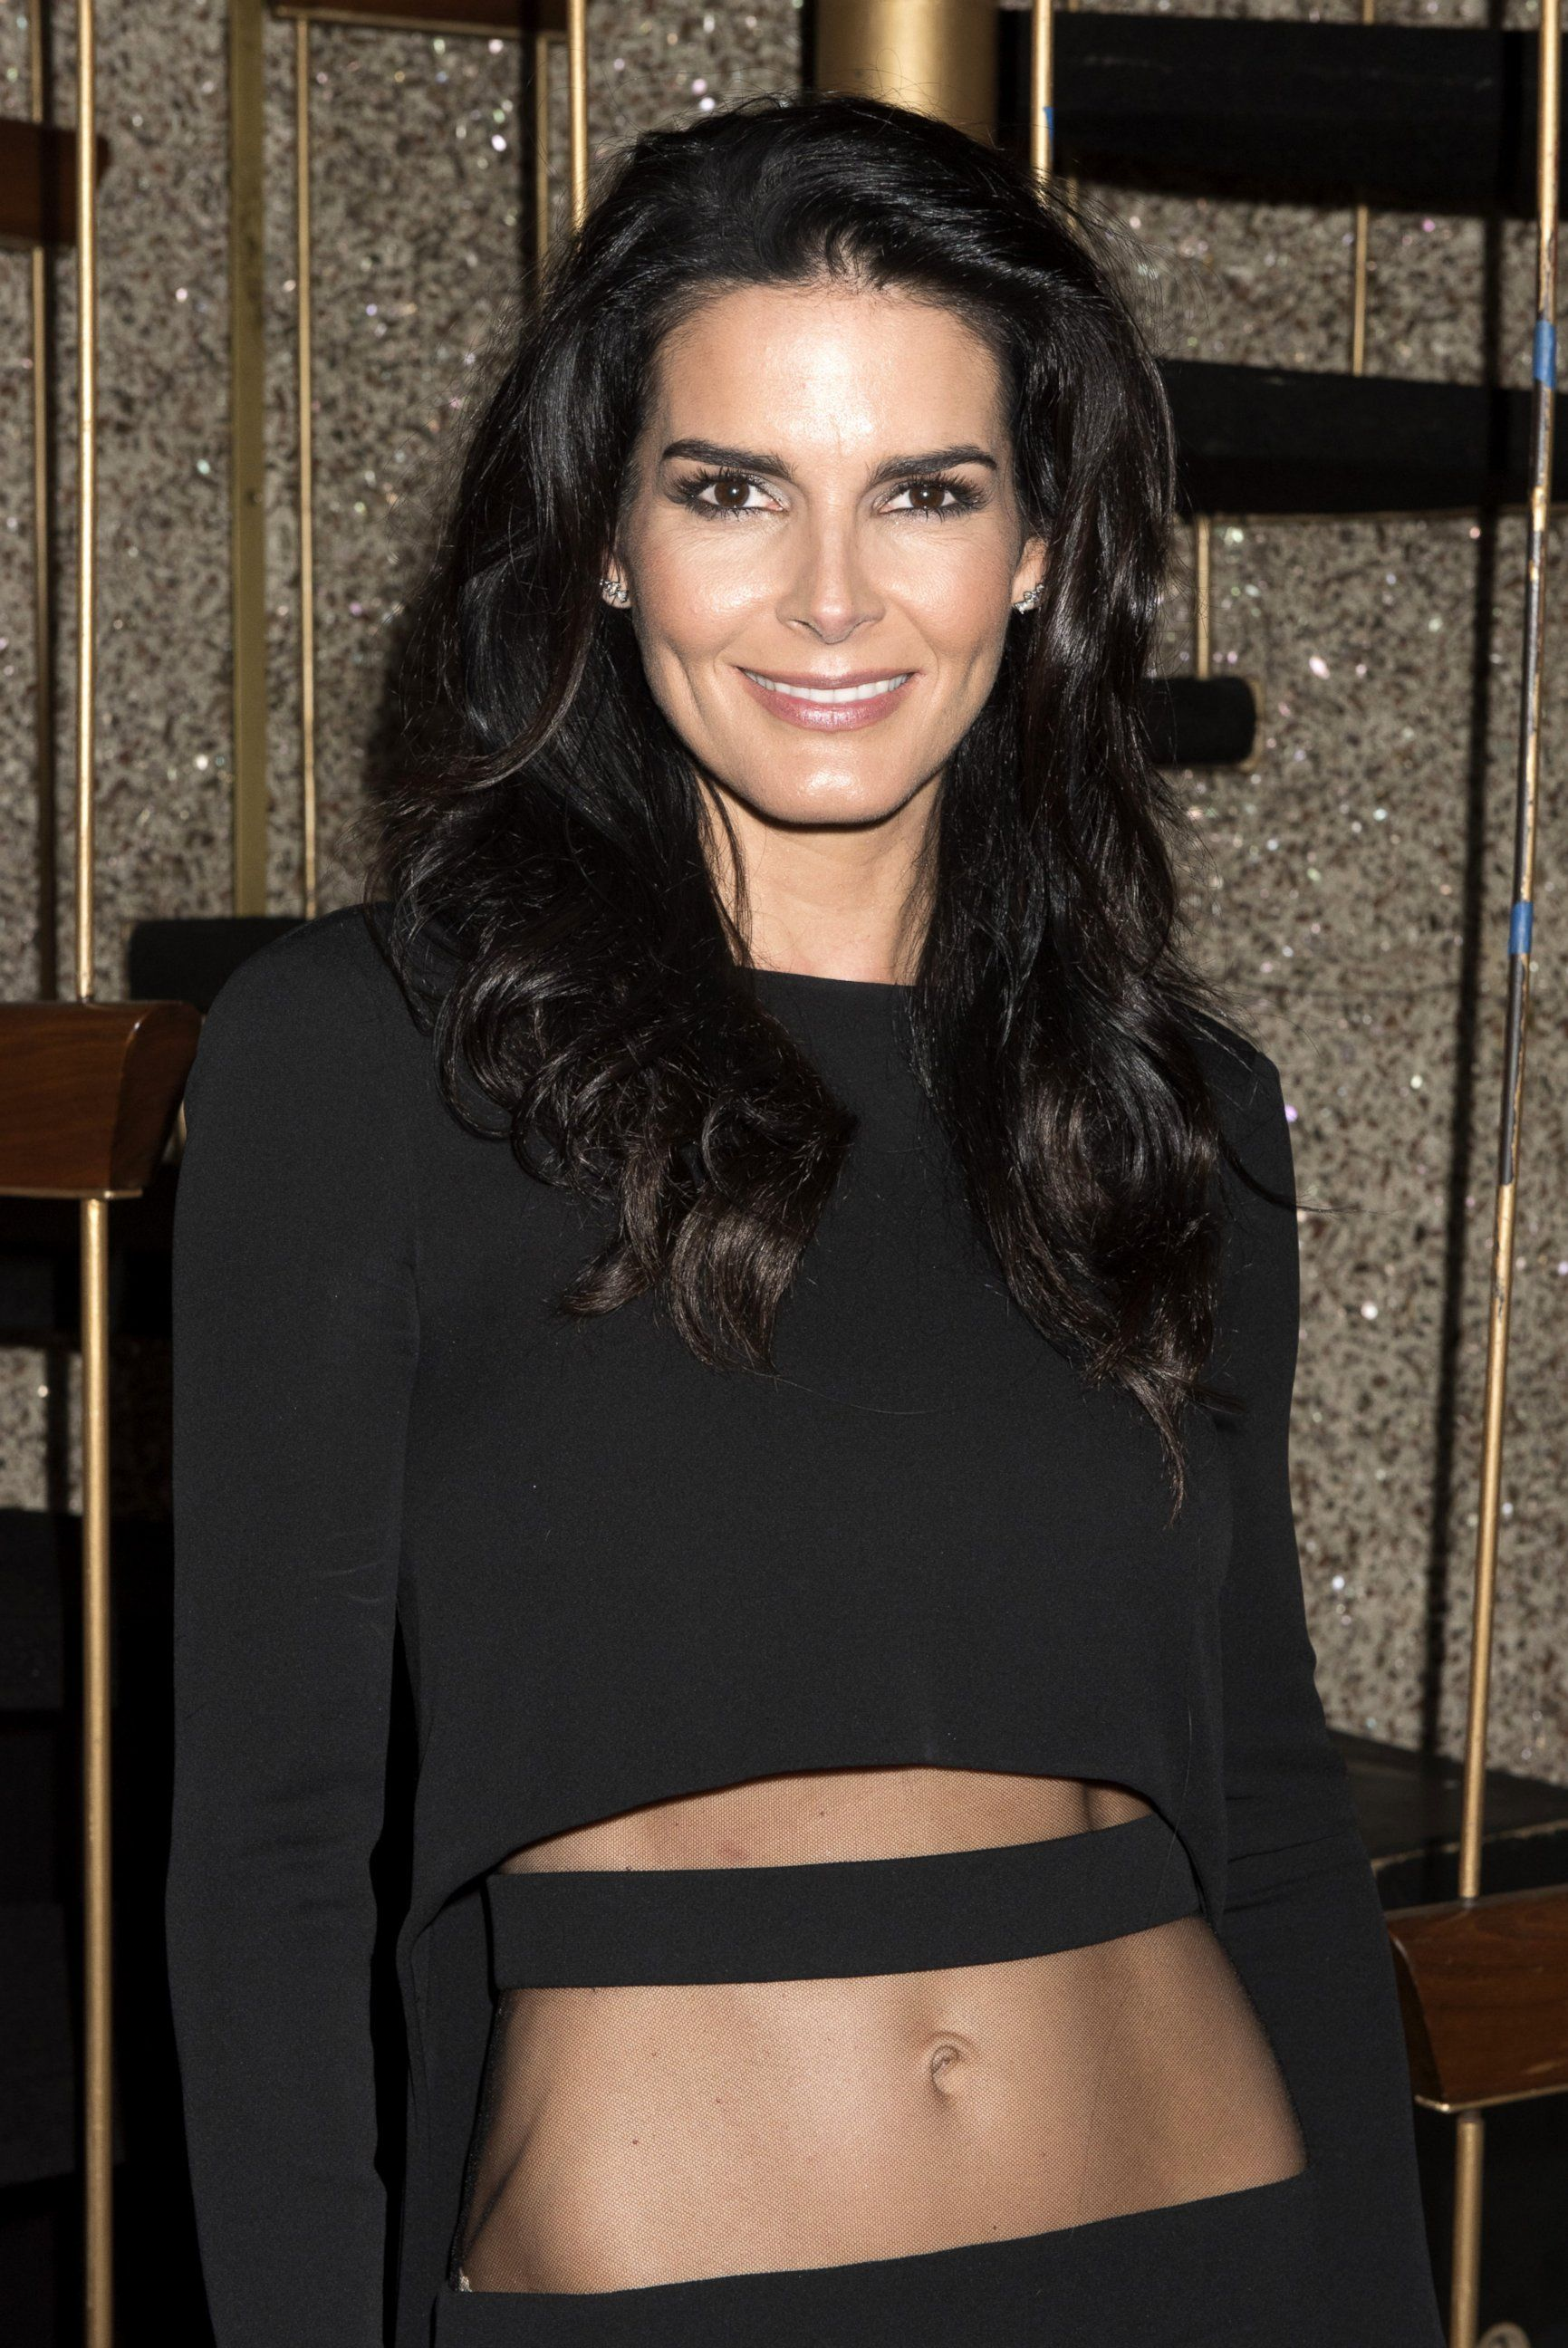 Angie harmon hottest photos